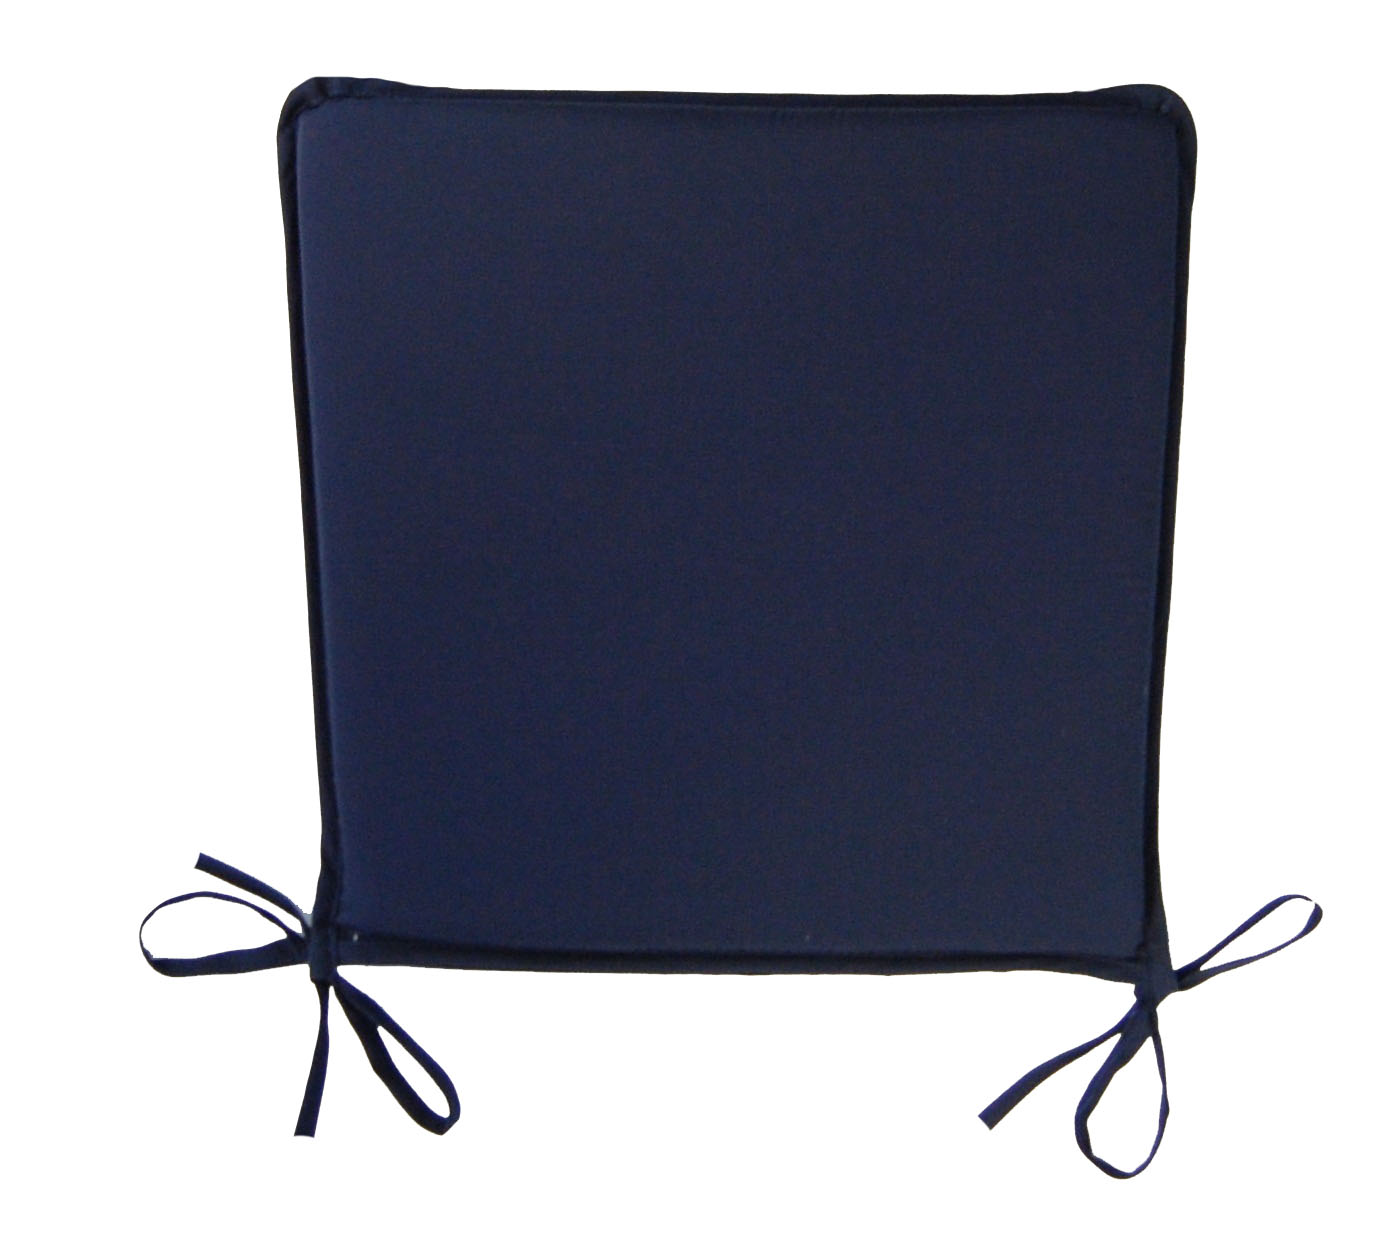 Dining Chair Seat Pads Plain Kitchen Garden Furniture  : Basic20 20Navy20Blue from www.ebay.co.uk size 1391 x 1249 jpeg 146kB